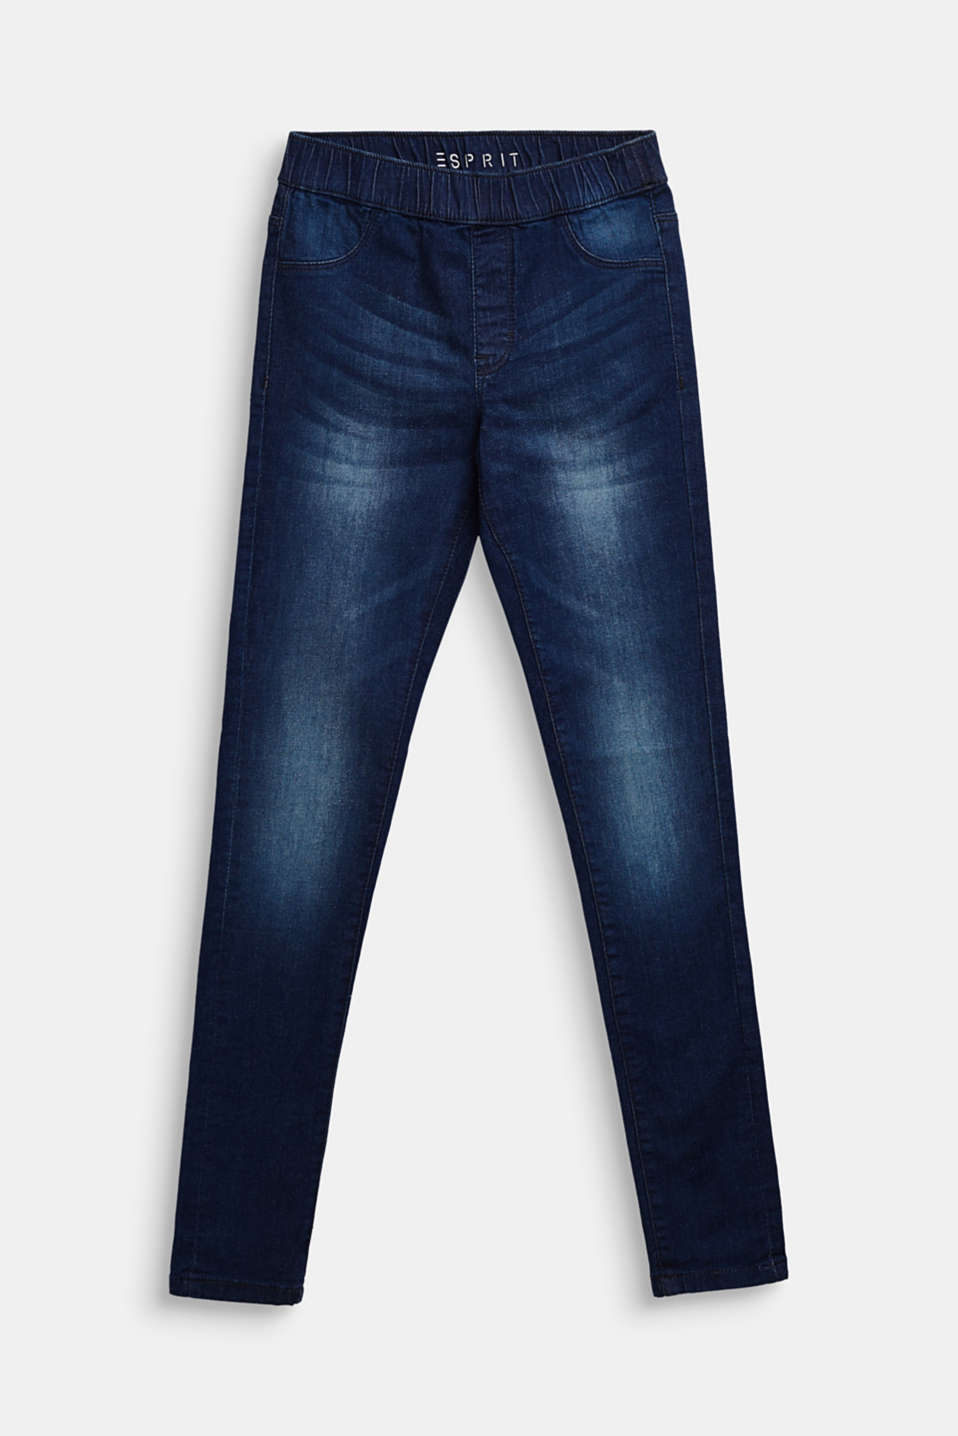 Esprit - Jeggings estremamente stretch con look washed out